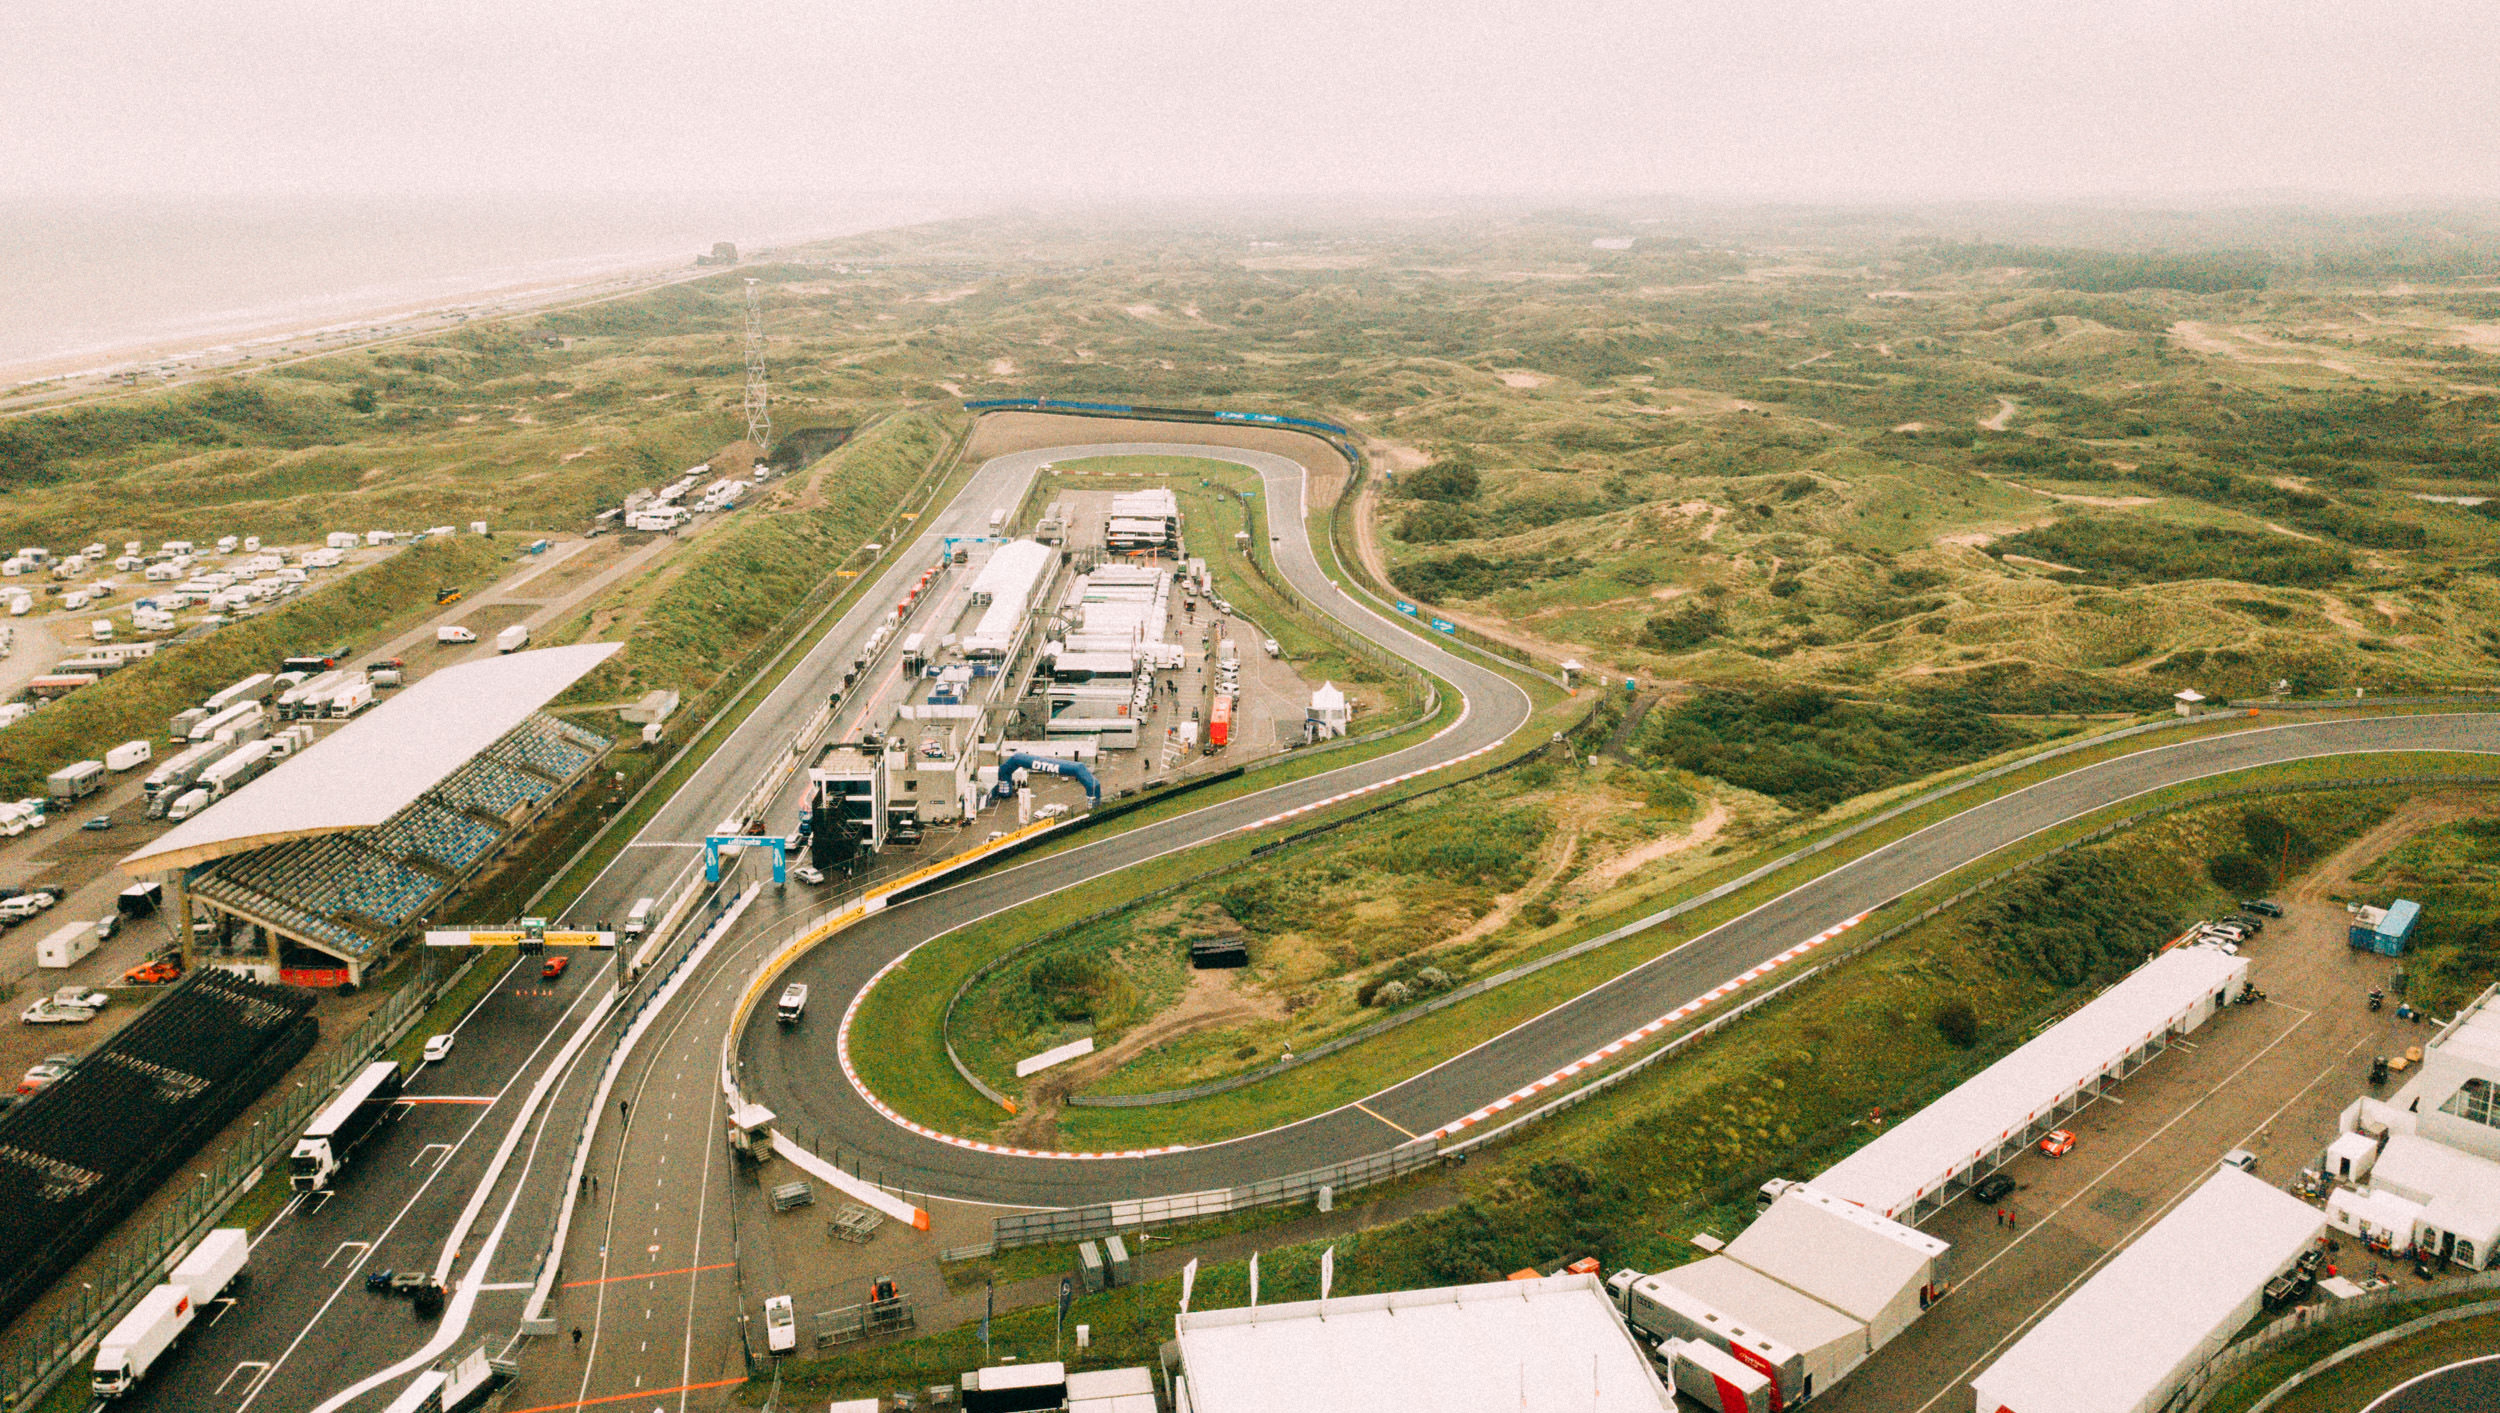 Dutch Grand Prix returns to F1 calender